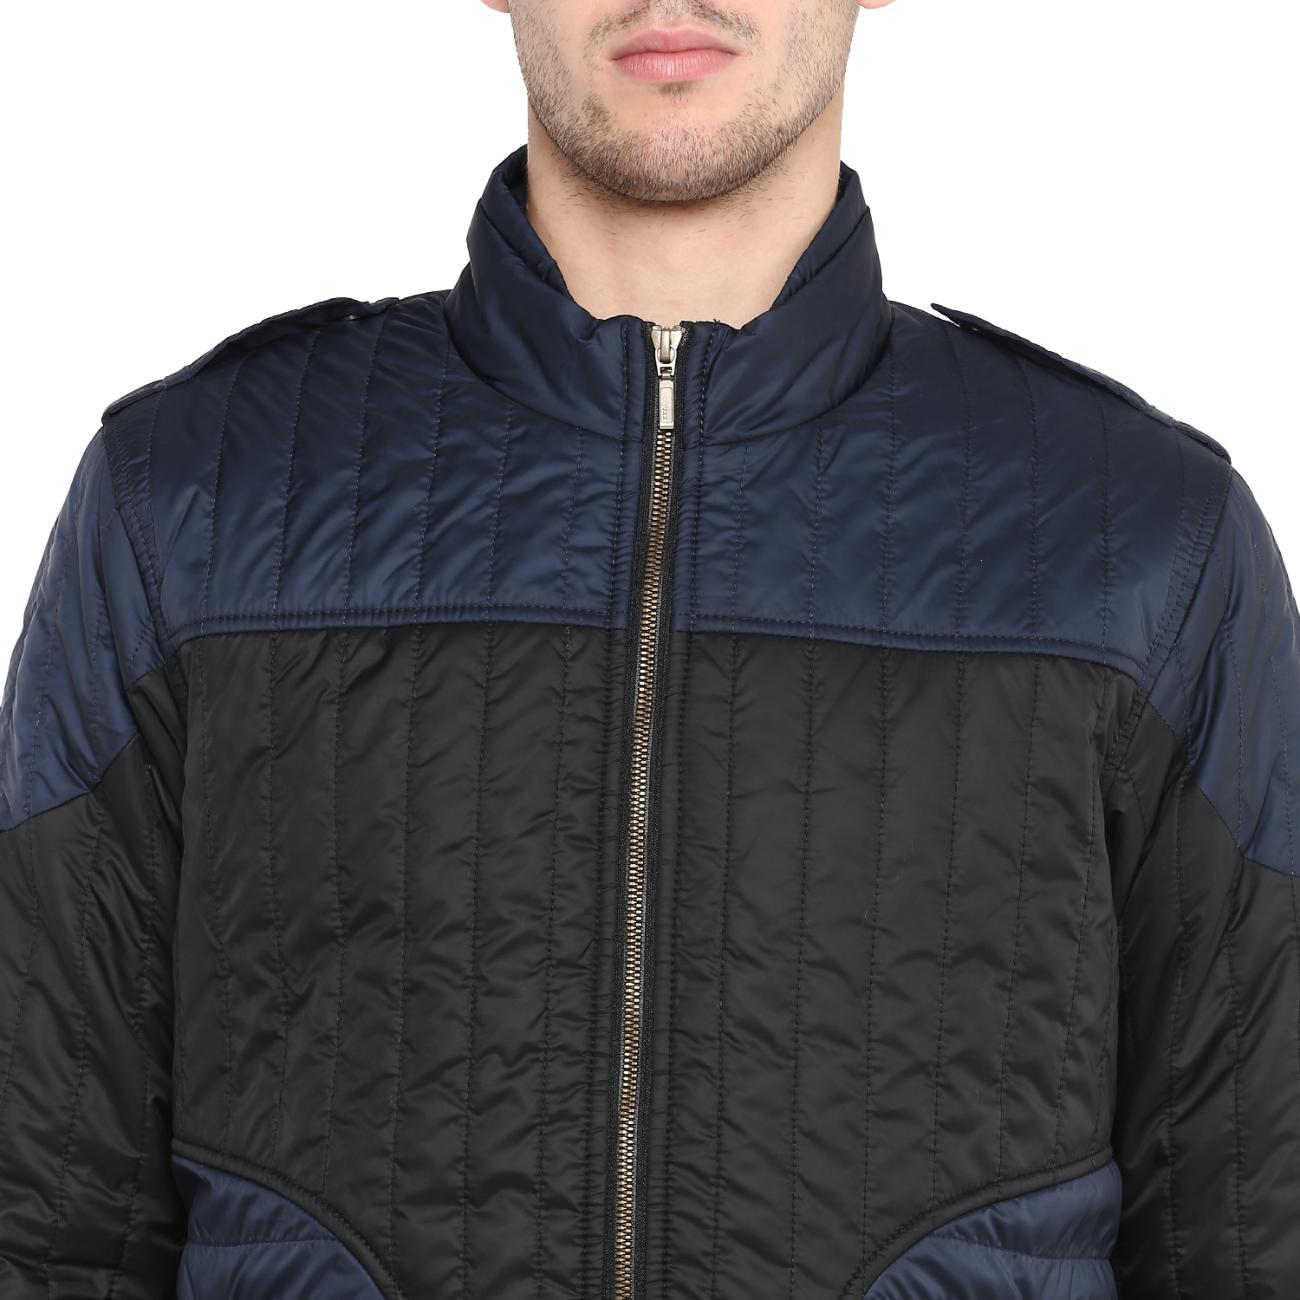 Purchase Black Navy Jacket at Red Chief